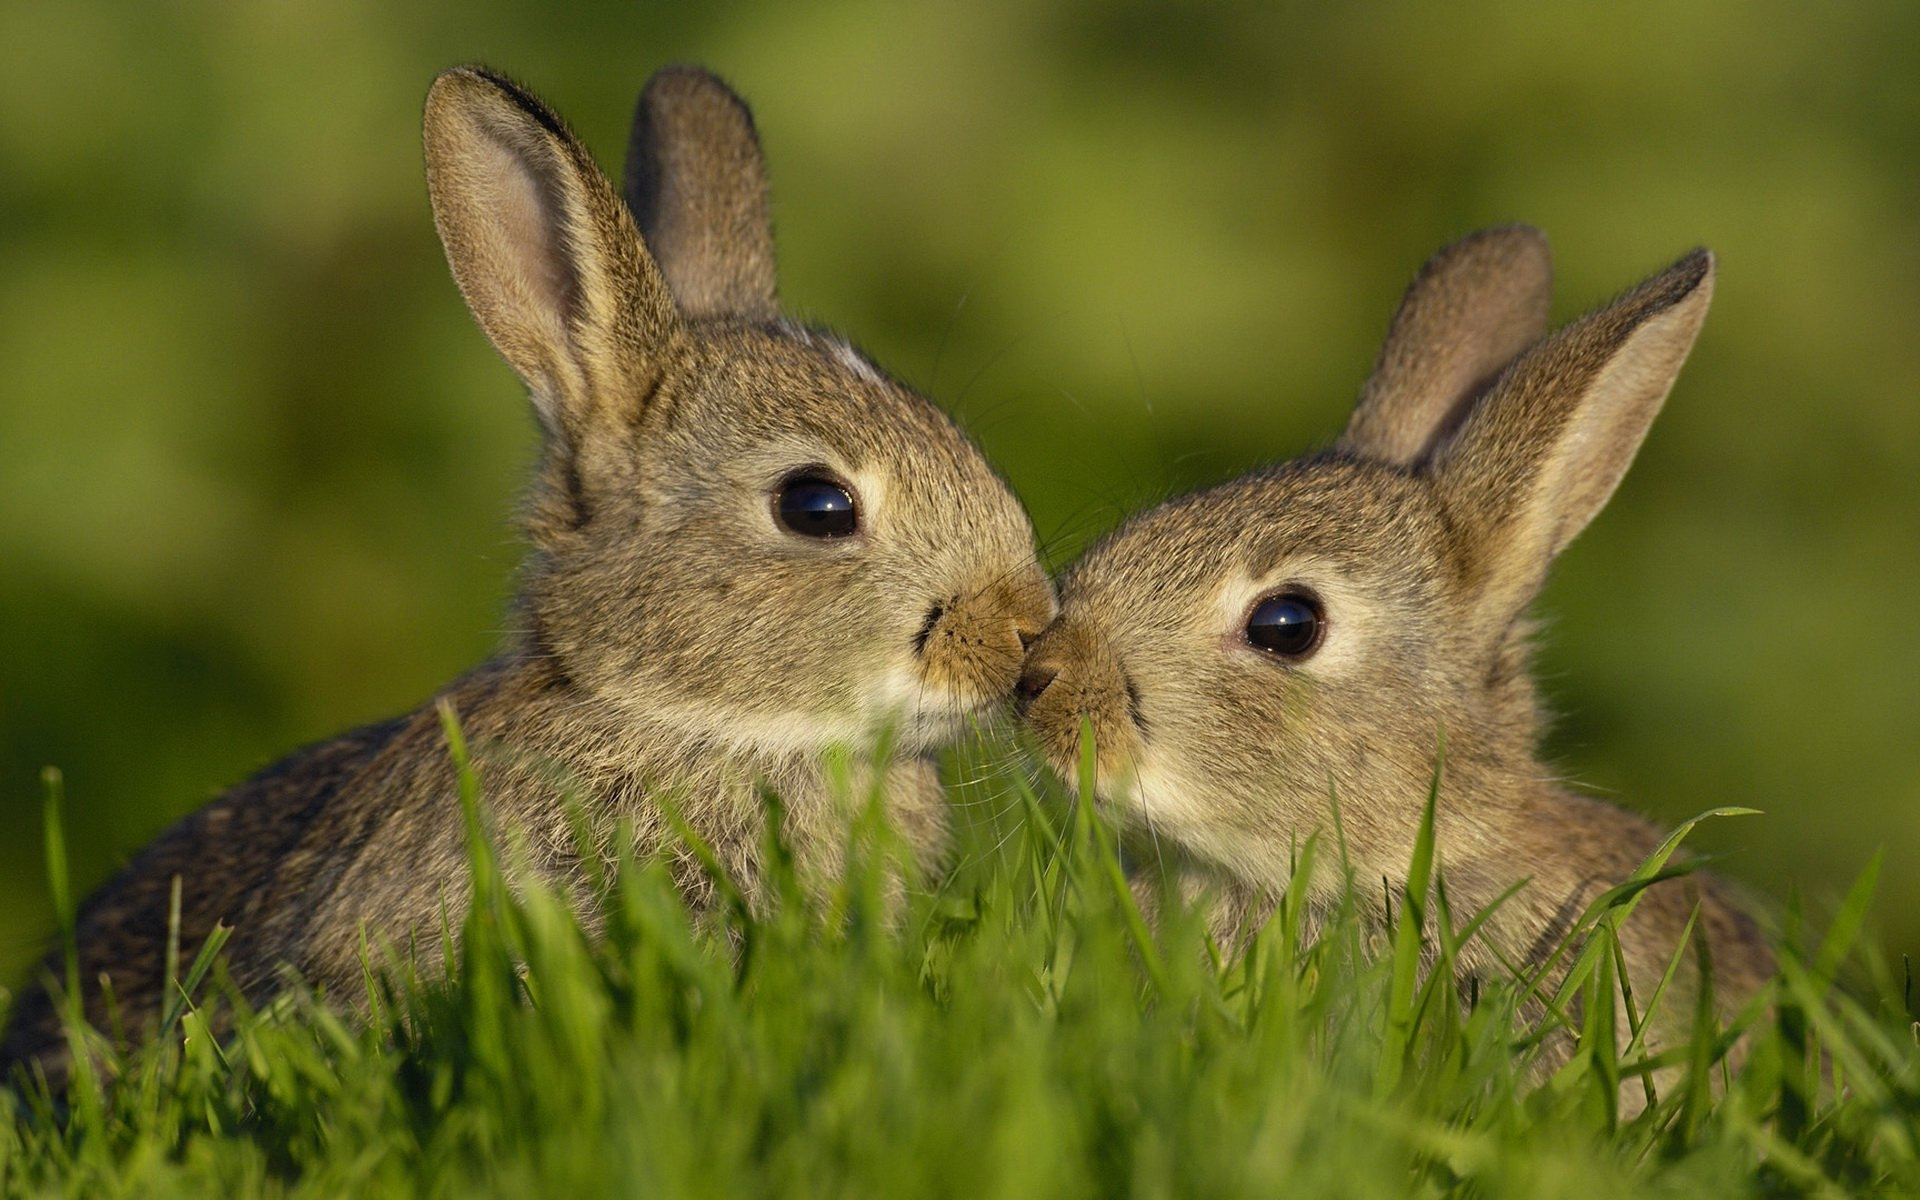 47743 download wallpaper Animals, Rabbits screensavers and pictures for free